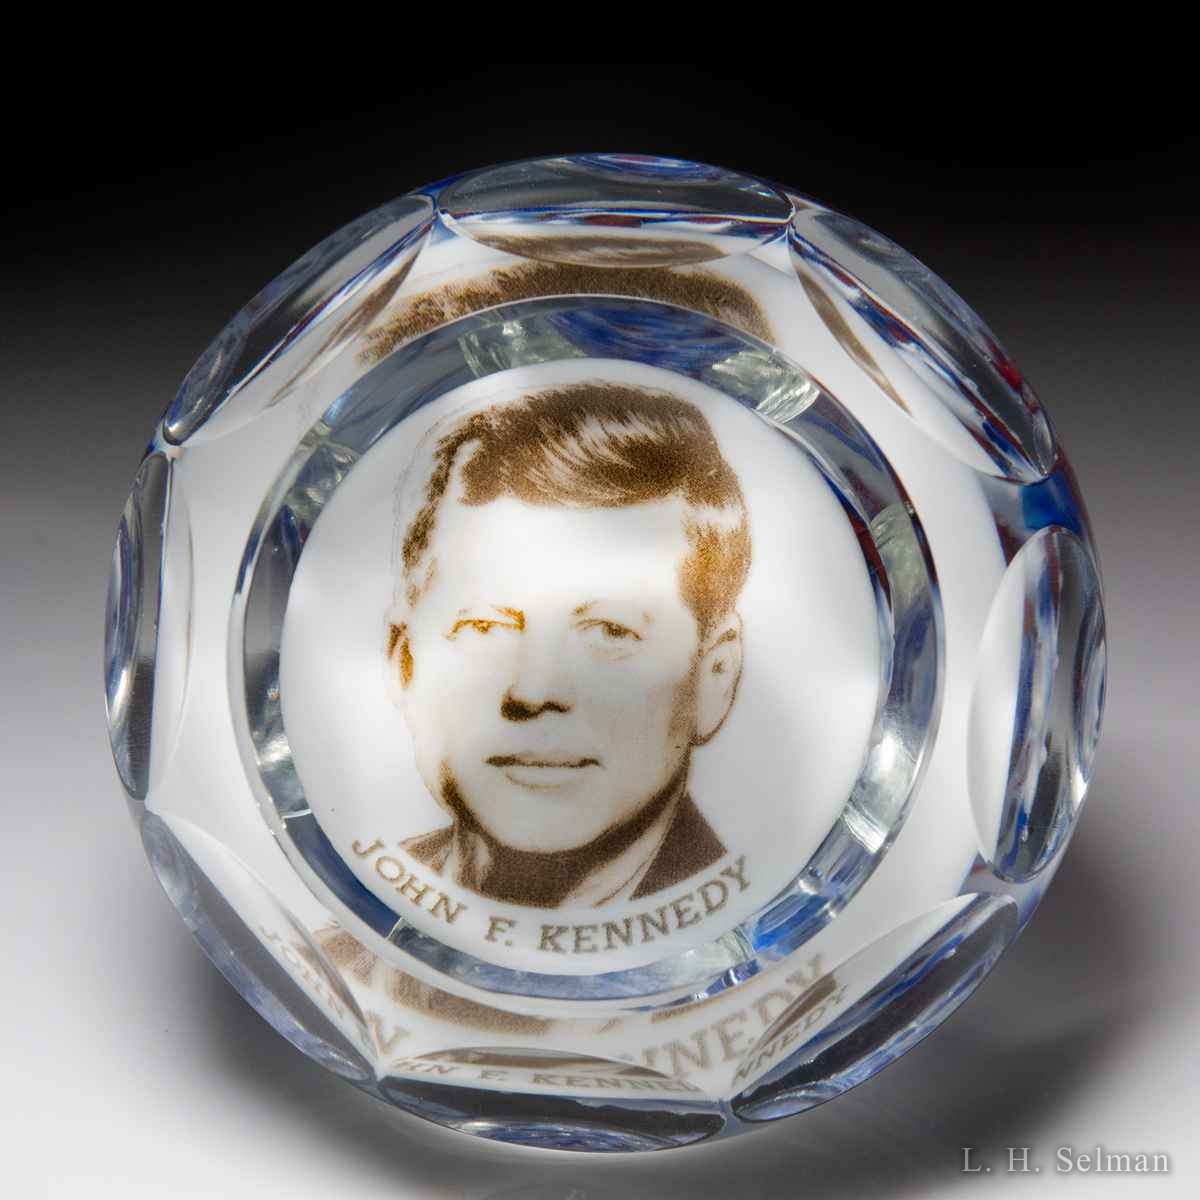 Gentile Glass 1963 John F. Kennedy faceted glass glass paperweight by  Misc Modern